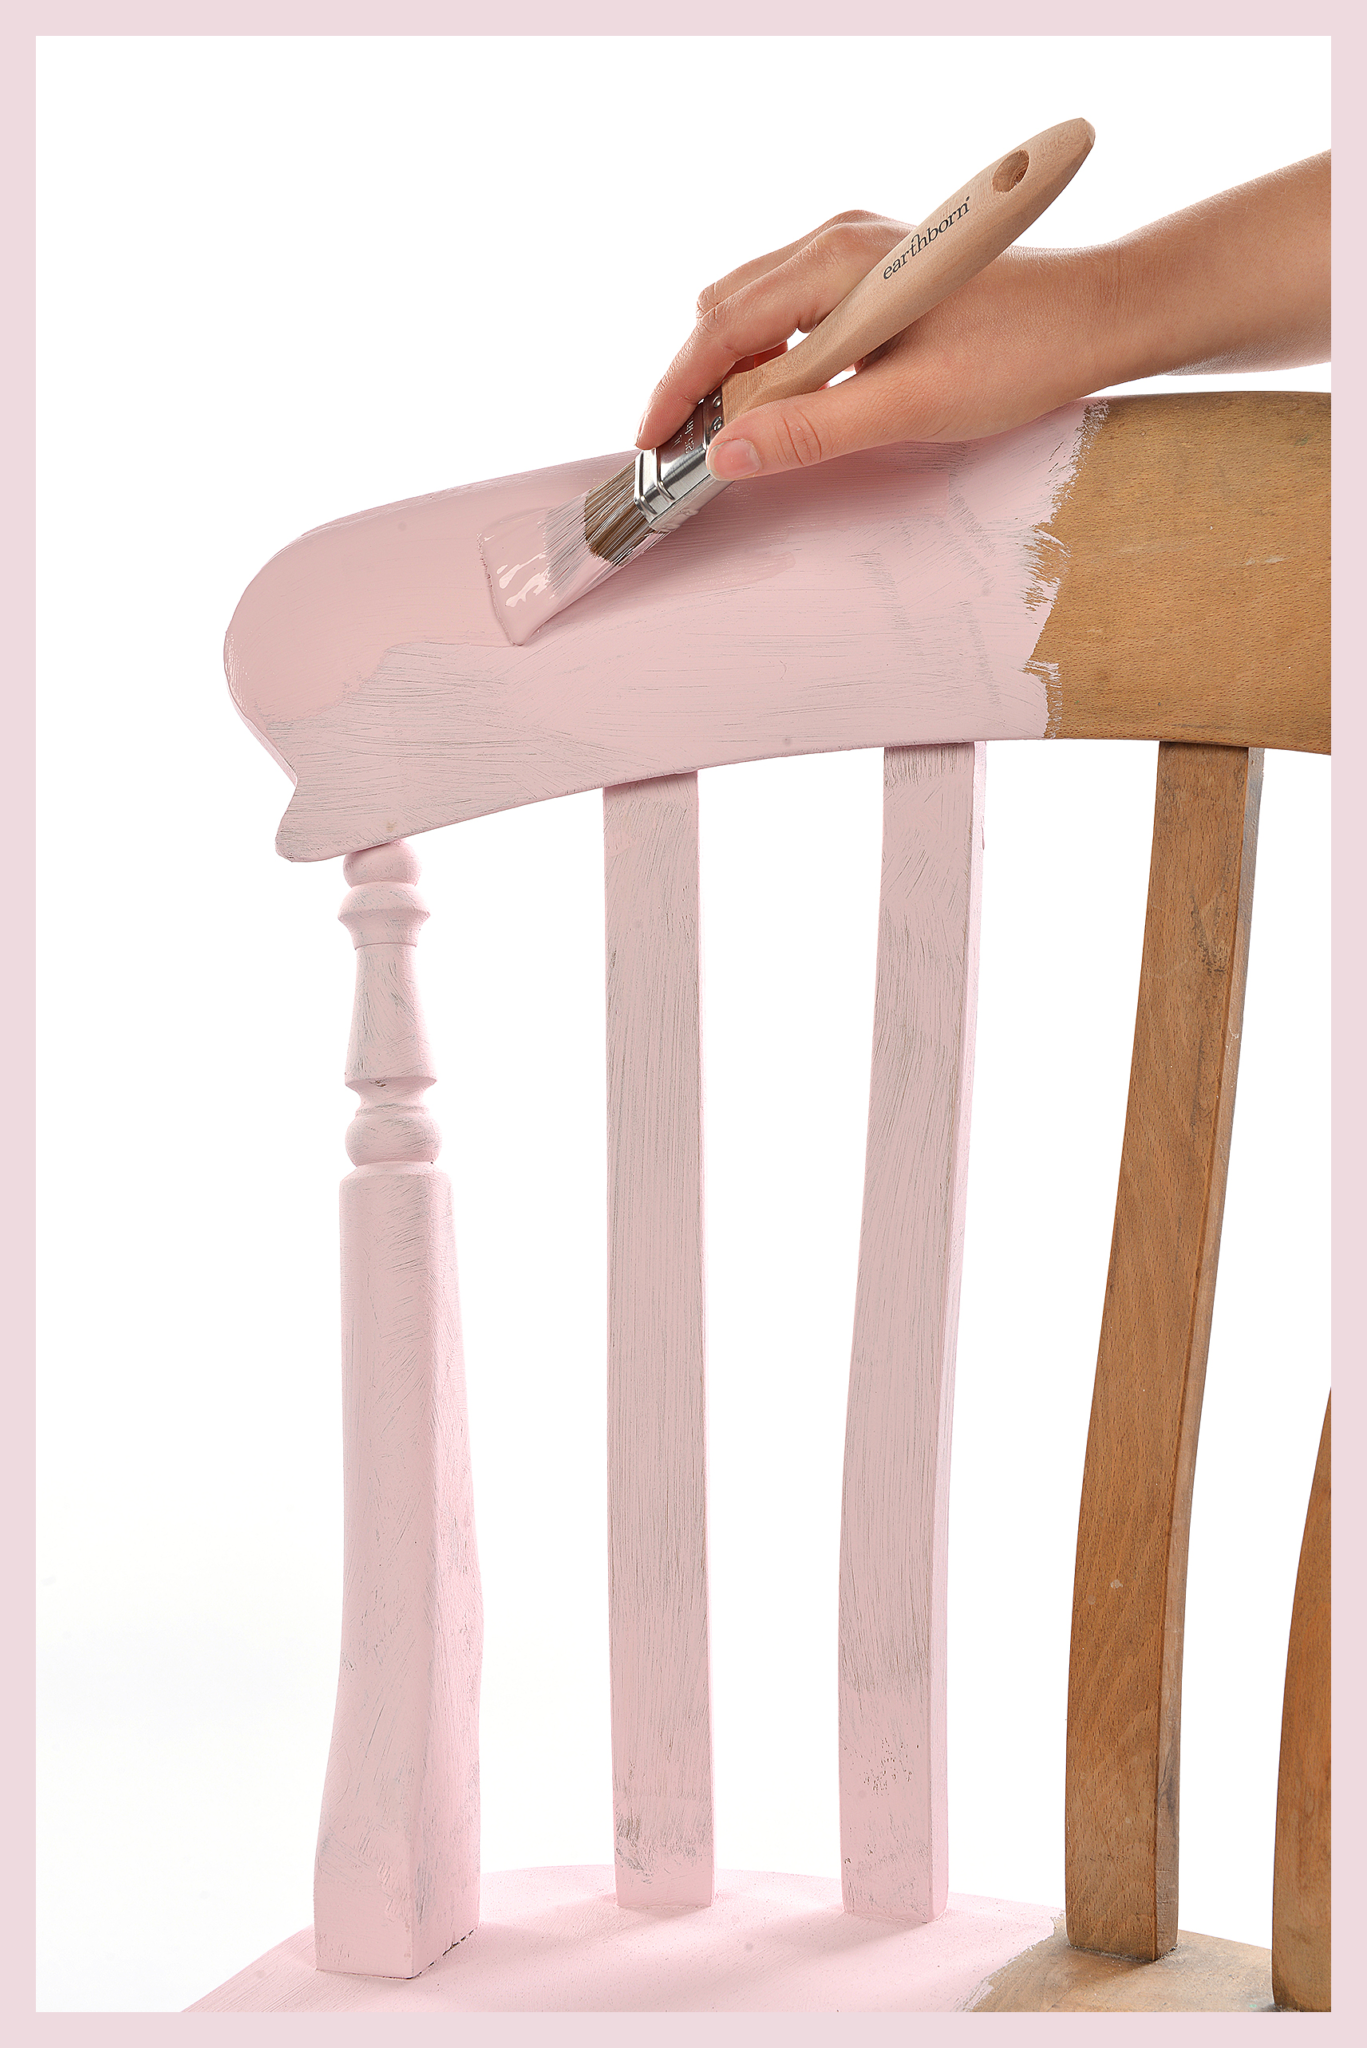 Painting a chair - applying Rosie Posie Eco Chic Claypaint with border